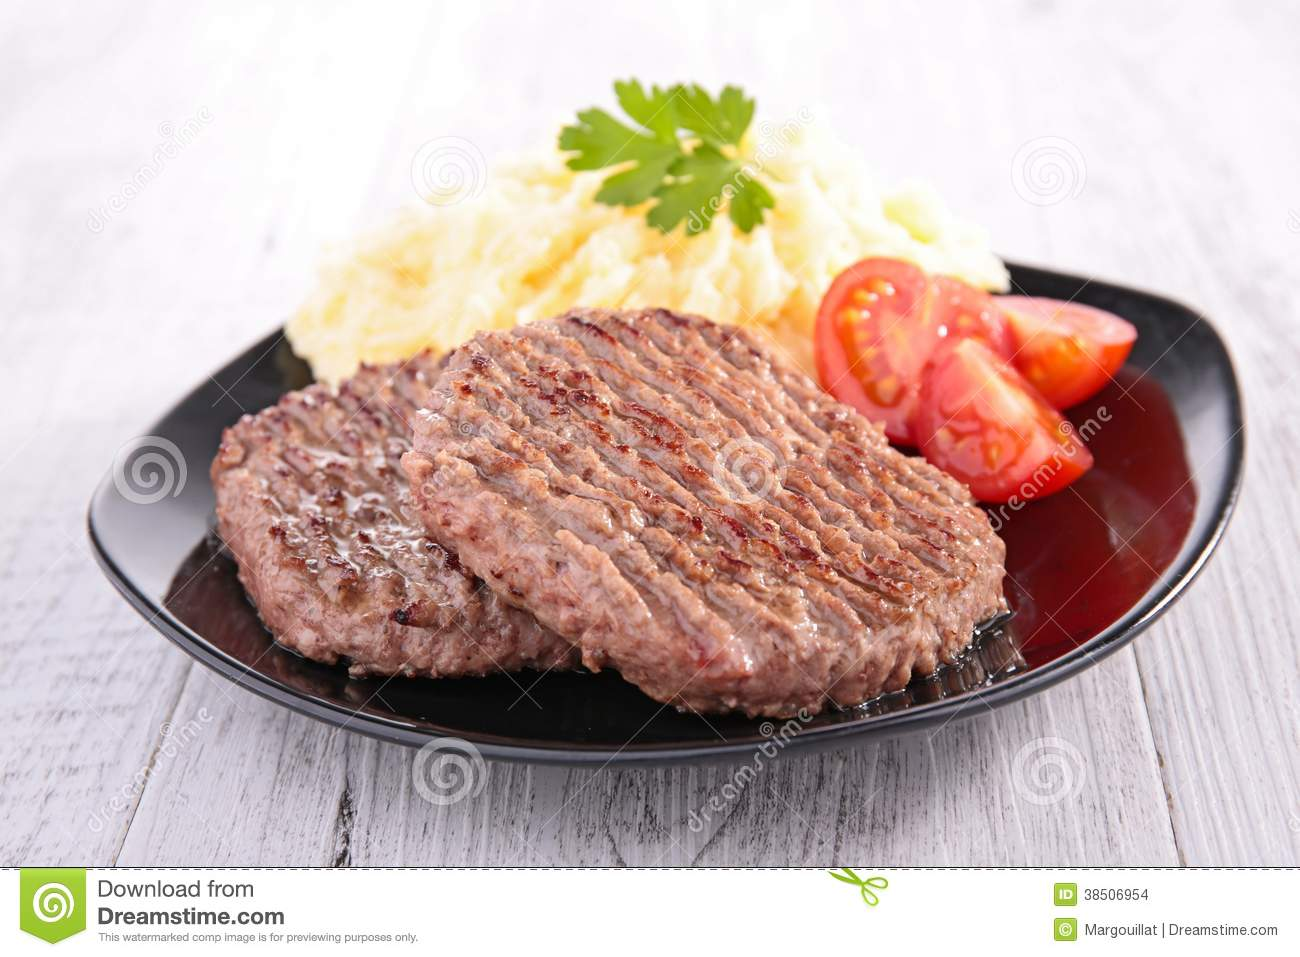 Download Beefsteak and puree stock photo. Image of dining, grilled - 38506954